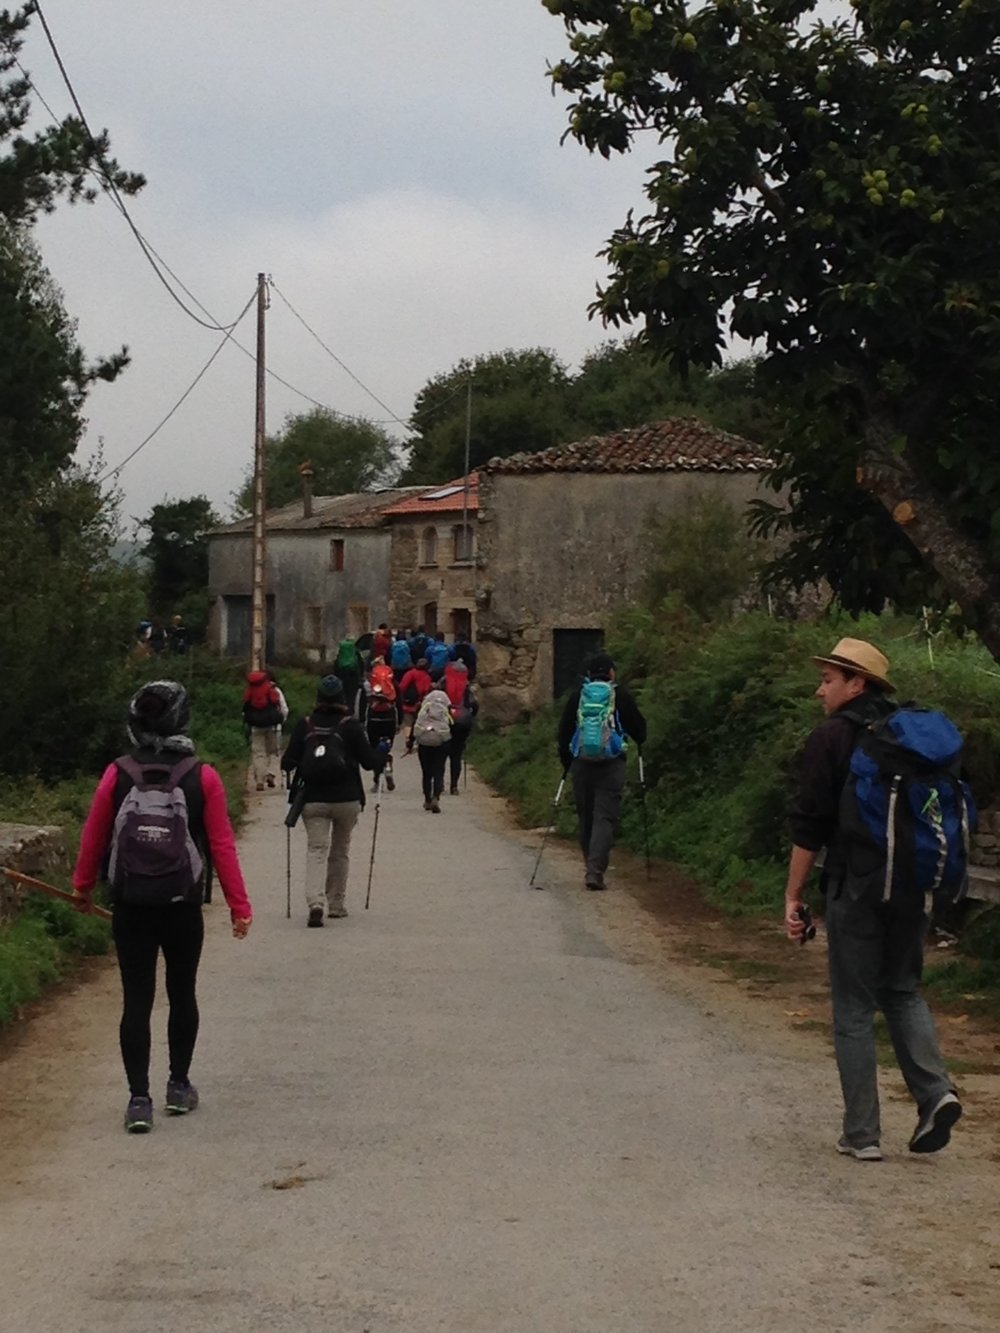 The last 100 k makes for a very crowded camino. It's a different experience than the first 600 kilometers and it requires an attitude adjustment. Galicia is so beautiful in my opinion, though, it makes the shock of sharing the way a little gentler. I tend to always be trailing behind Mike.